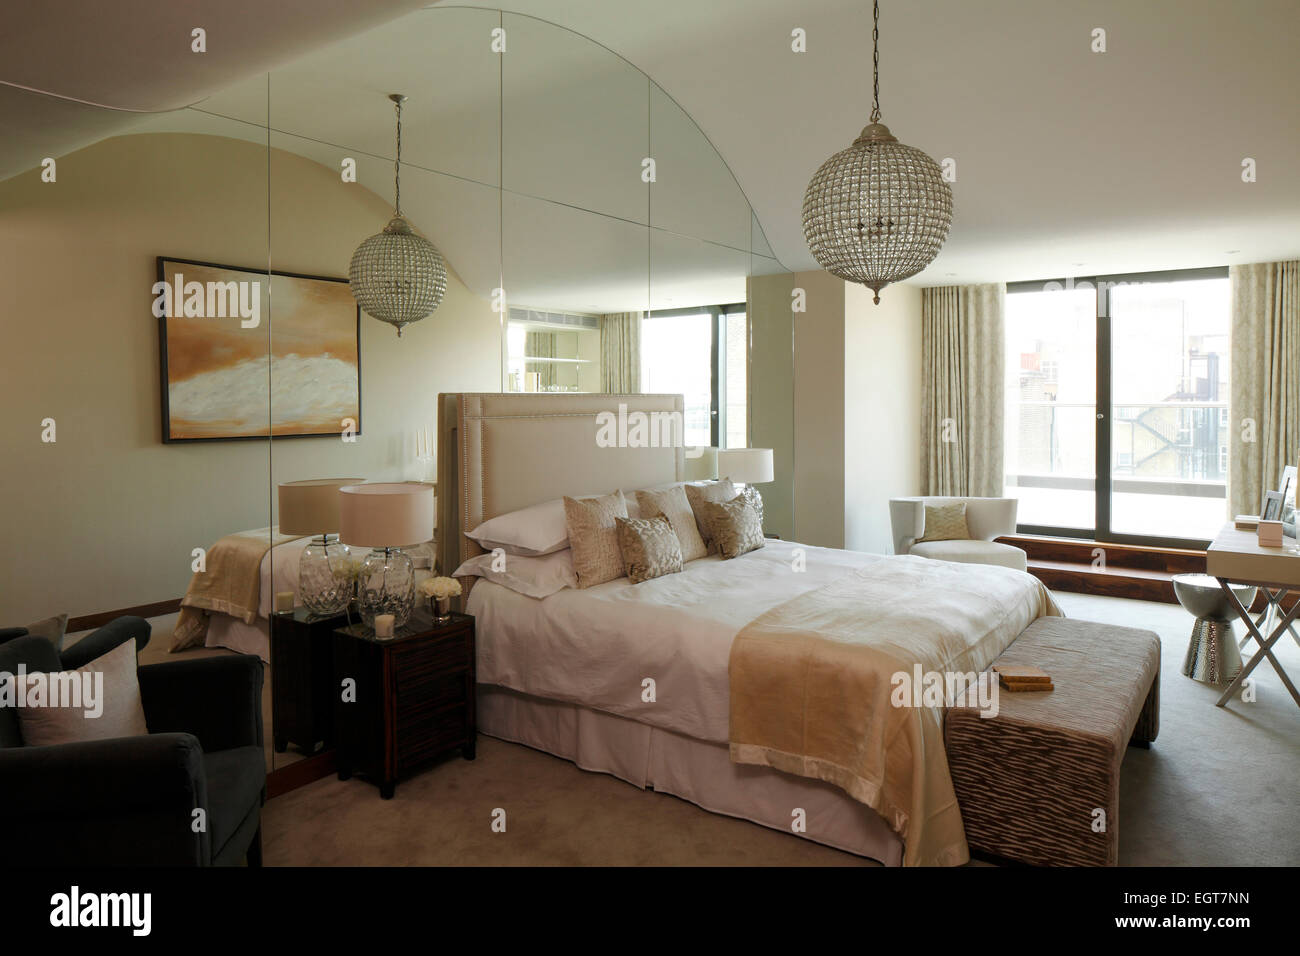 Mirrored ceiling bedroom